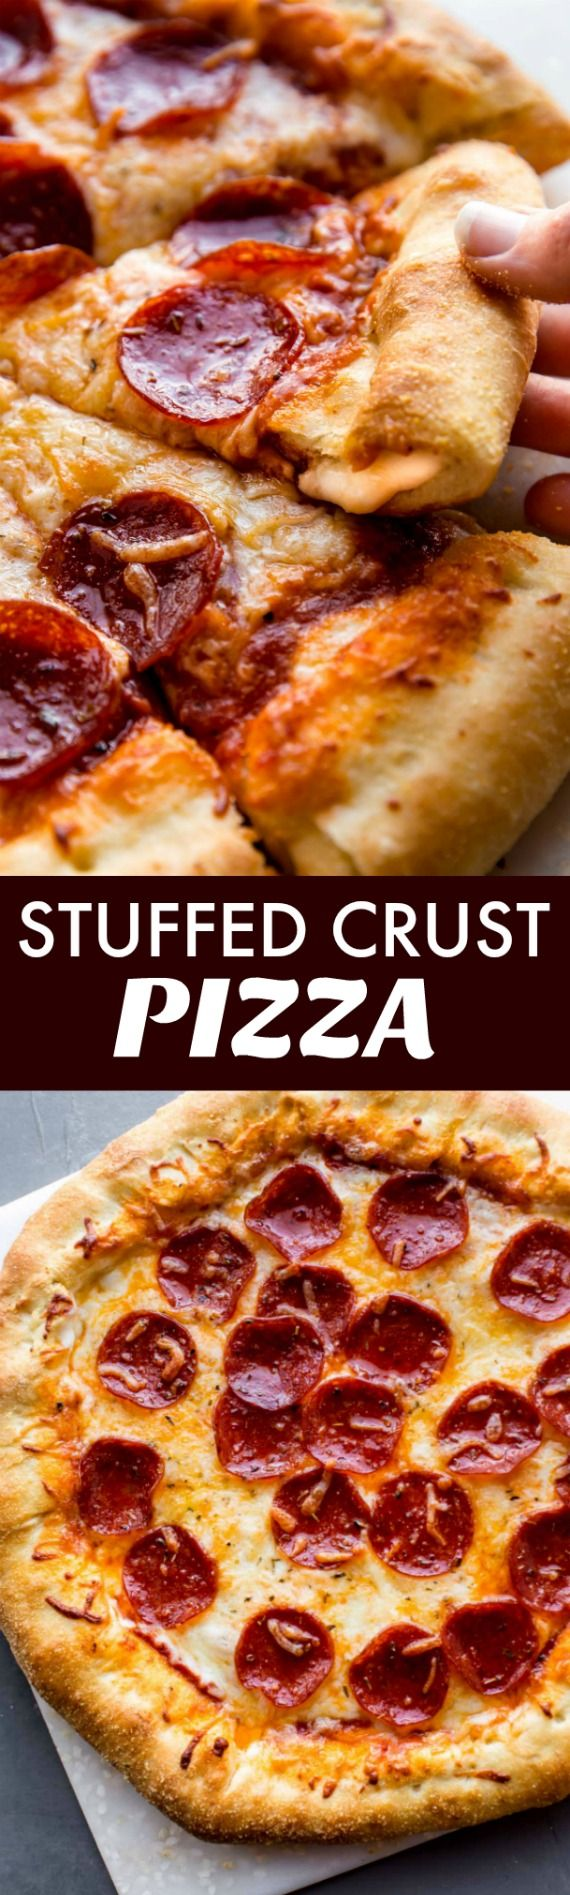 How to make stuffed crust cheese pizza with homemade pizza crust the easy way! Pepperoni pizza recipe on sallysbakingaddiction.com